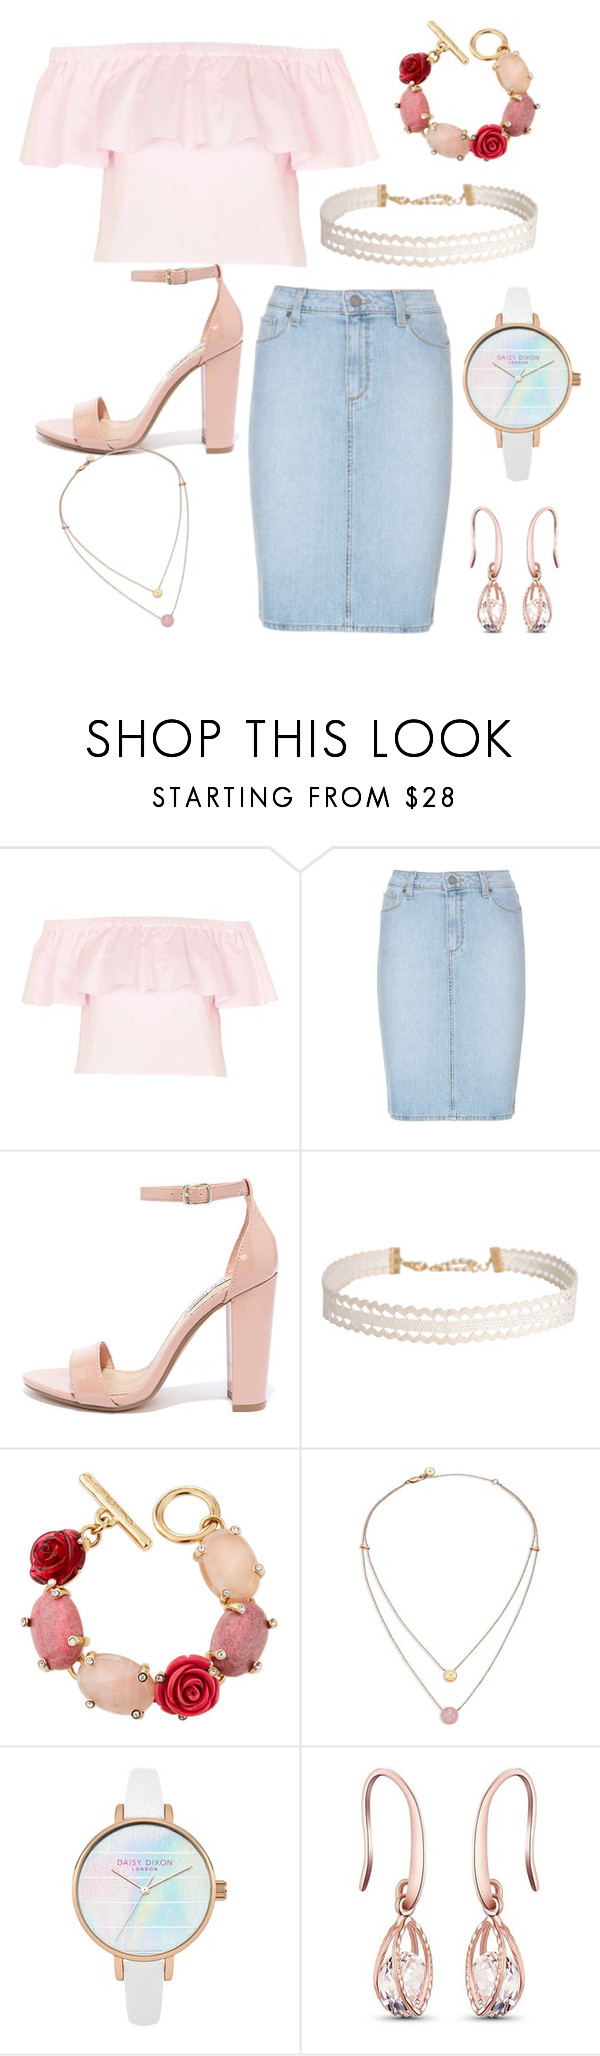 """""""Untitled #91"""" by andreia-lin on Polyvore featuring Topshop, Paige Denim, Steve Madden, Humble Chic, Oscar de la Renta and Michael Kors"""